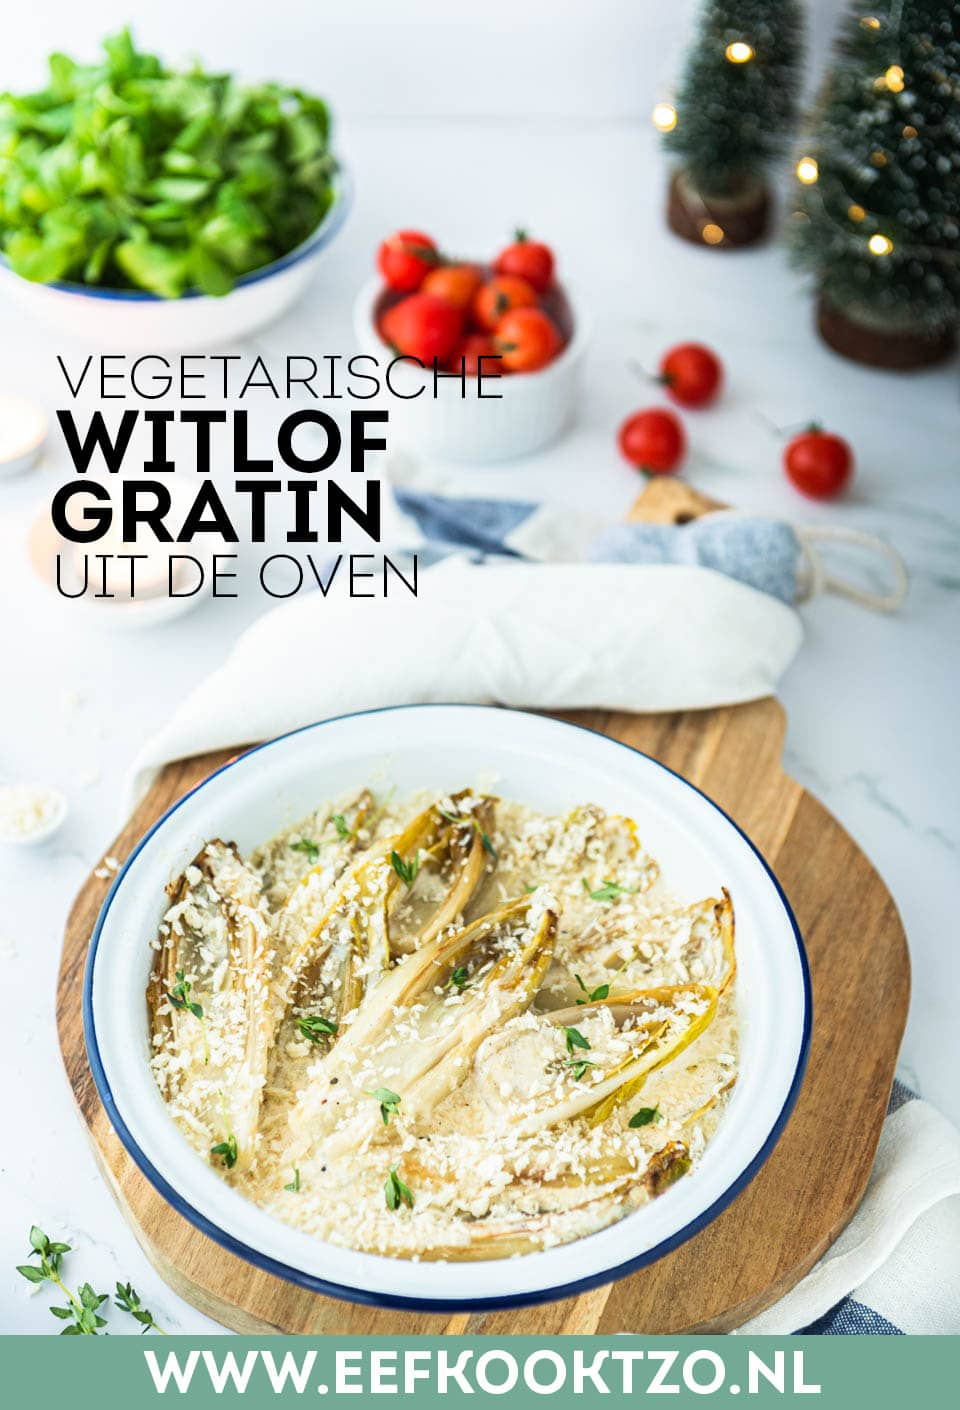 Witlof gratin uit de oven Pinterest Collage